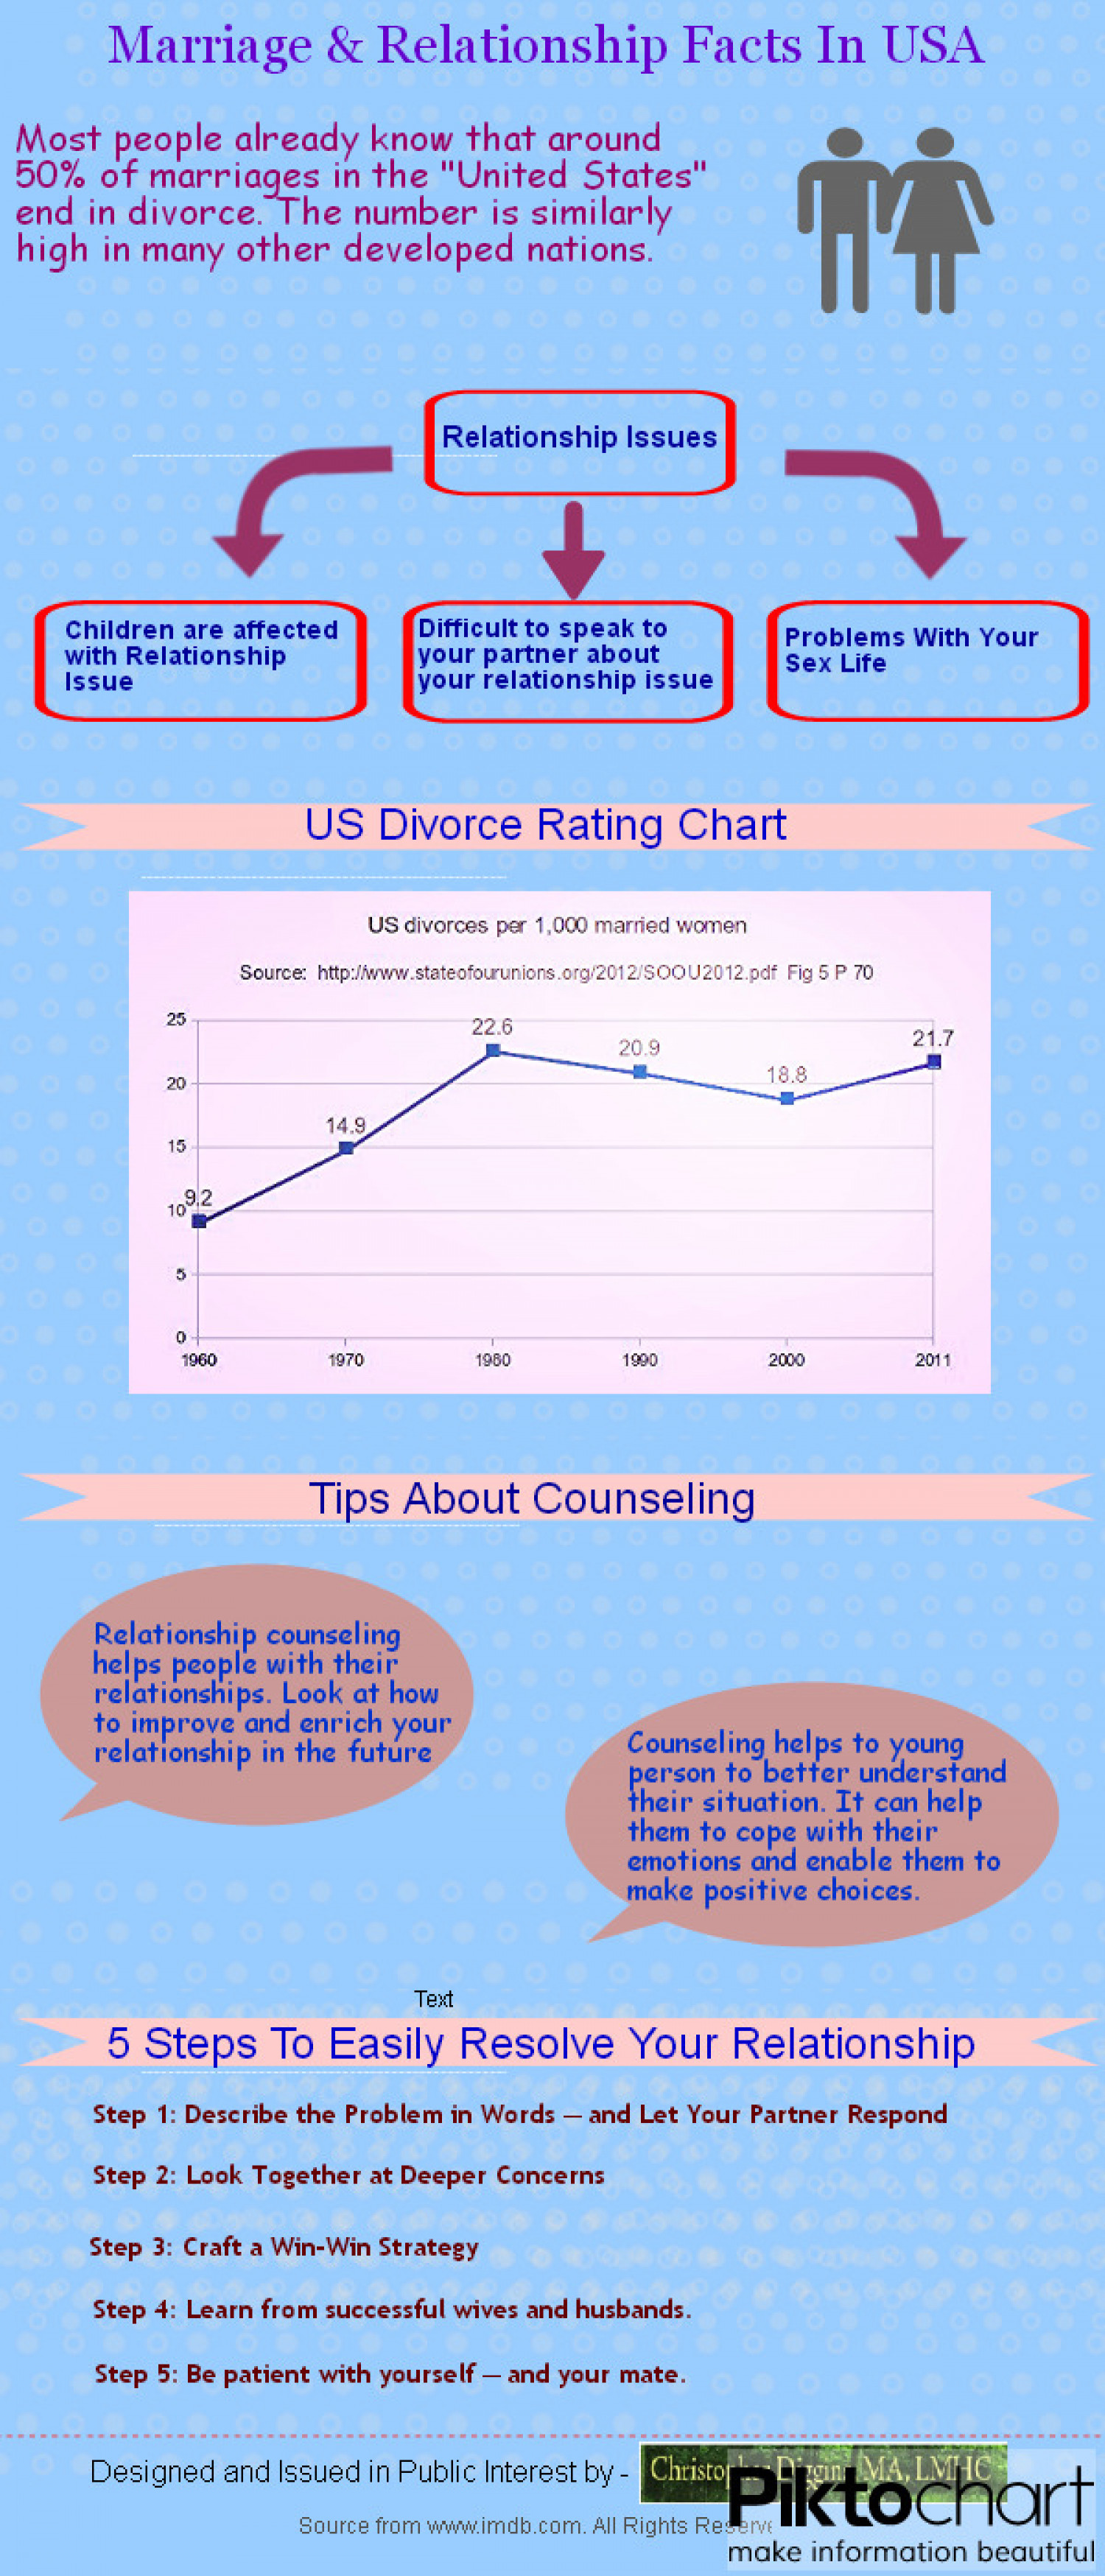 Marriage & Relationship Facts In USA Infographic